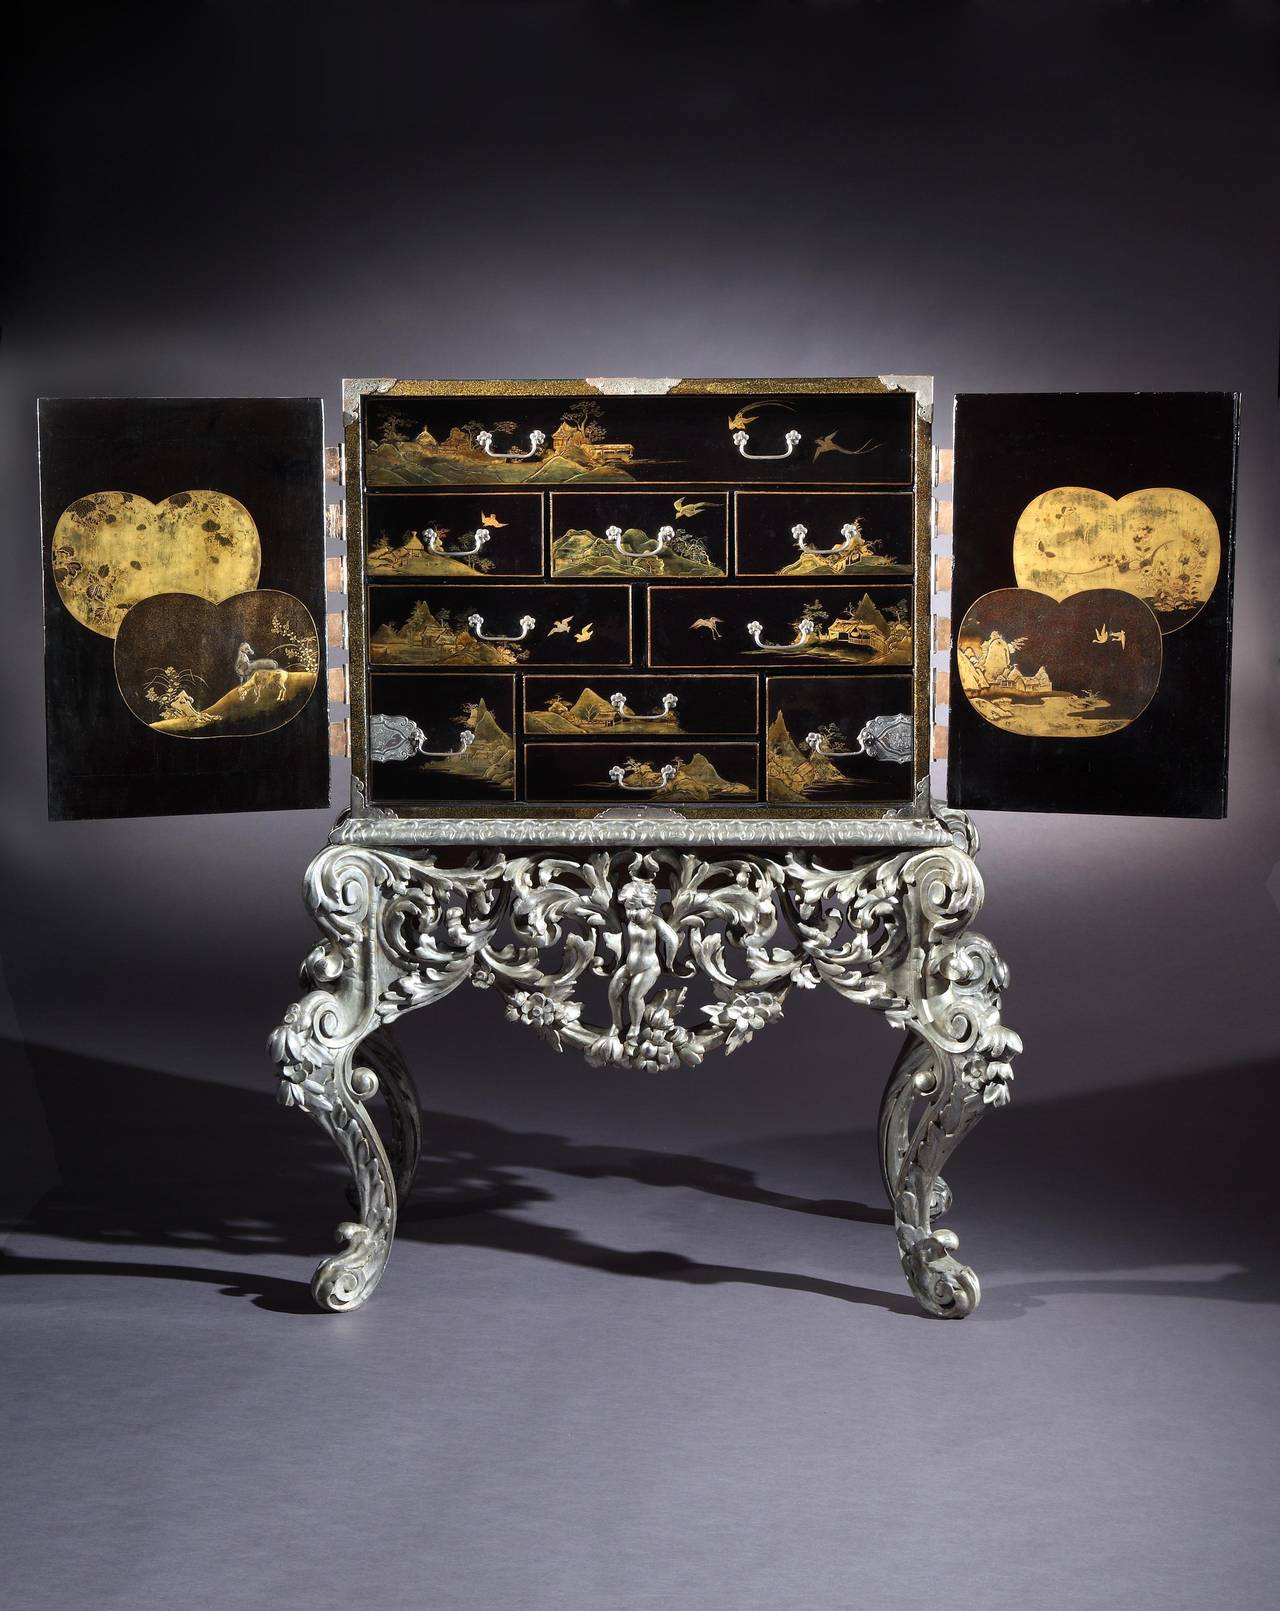 A fine late 17th, early 18th century silvered mounted Japanese black and gilt lacquer cabinet on a William and Mary silvered stand; the cabinet decorated throughout, including the top, with birds and pavilions within mountain landscapes, with a pair